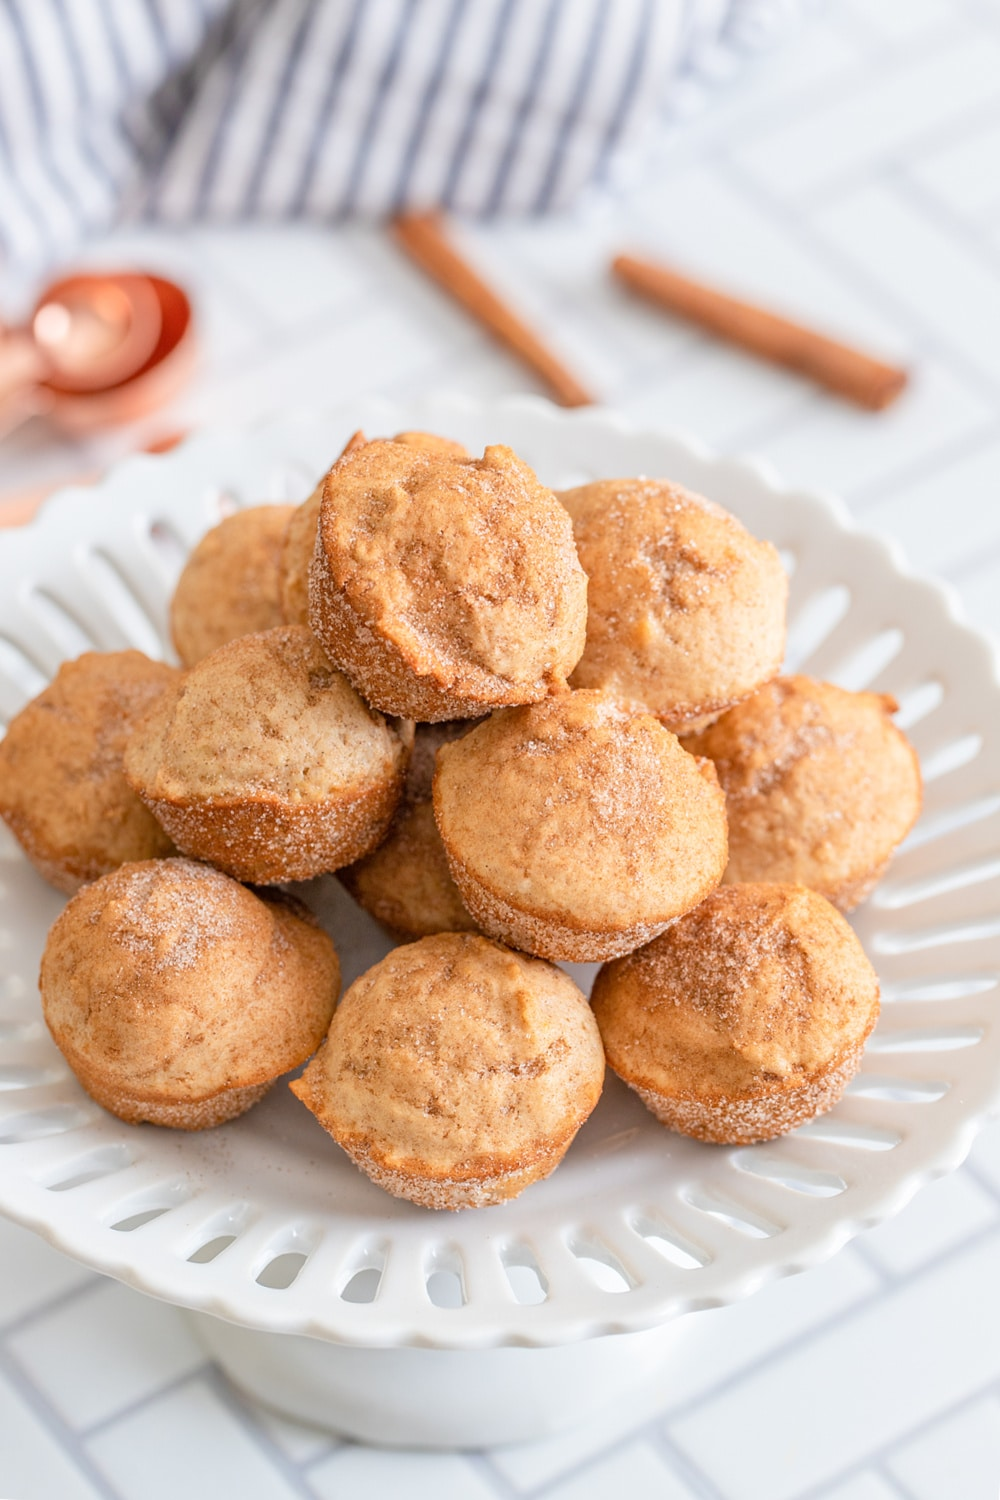 A dozen Cinnamon Sugar Mini Muffins on a white dish